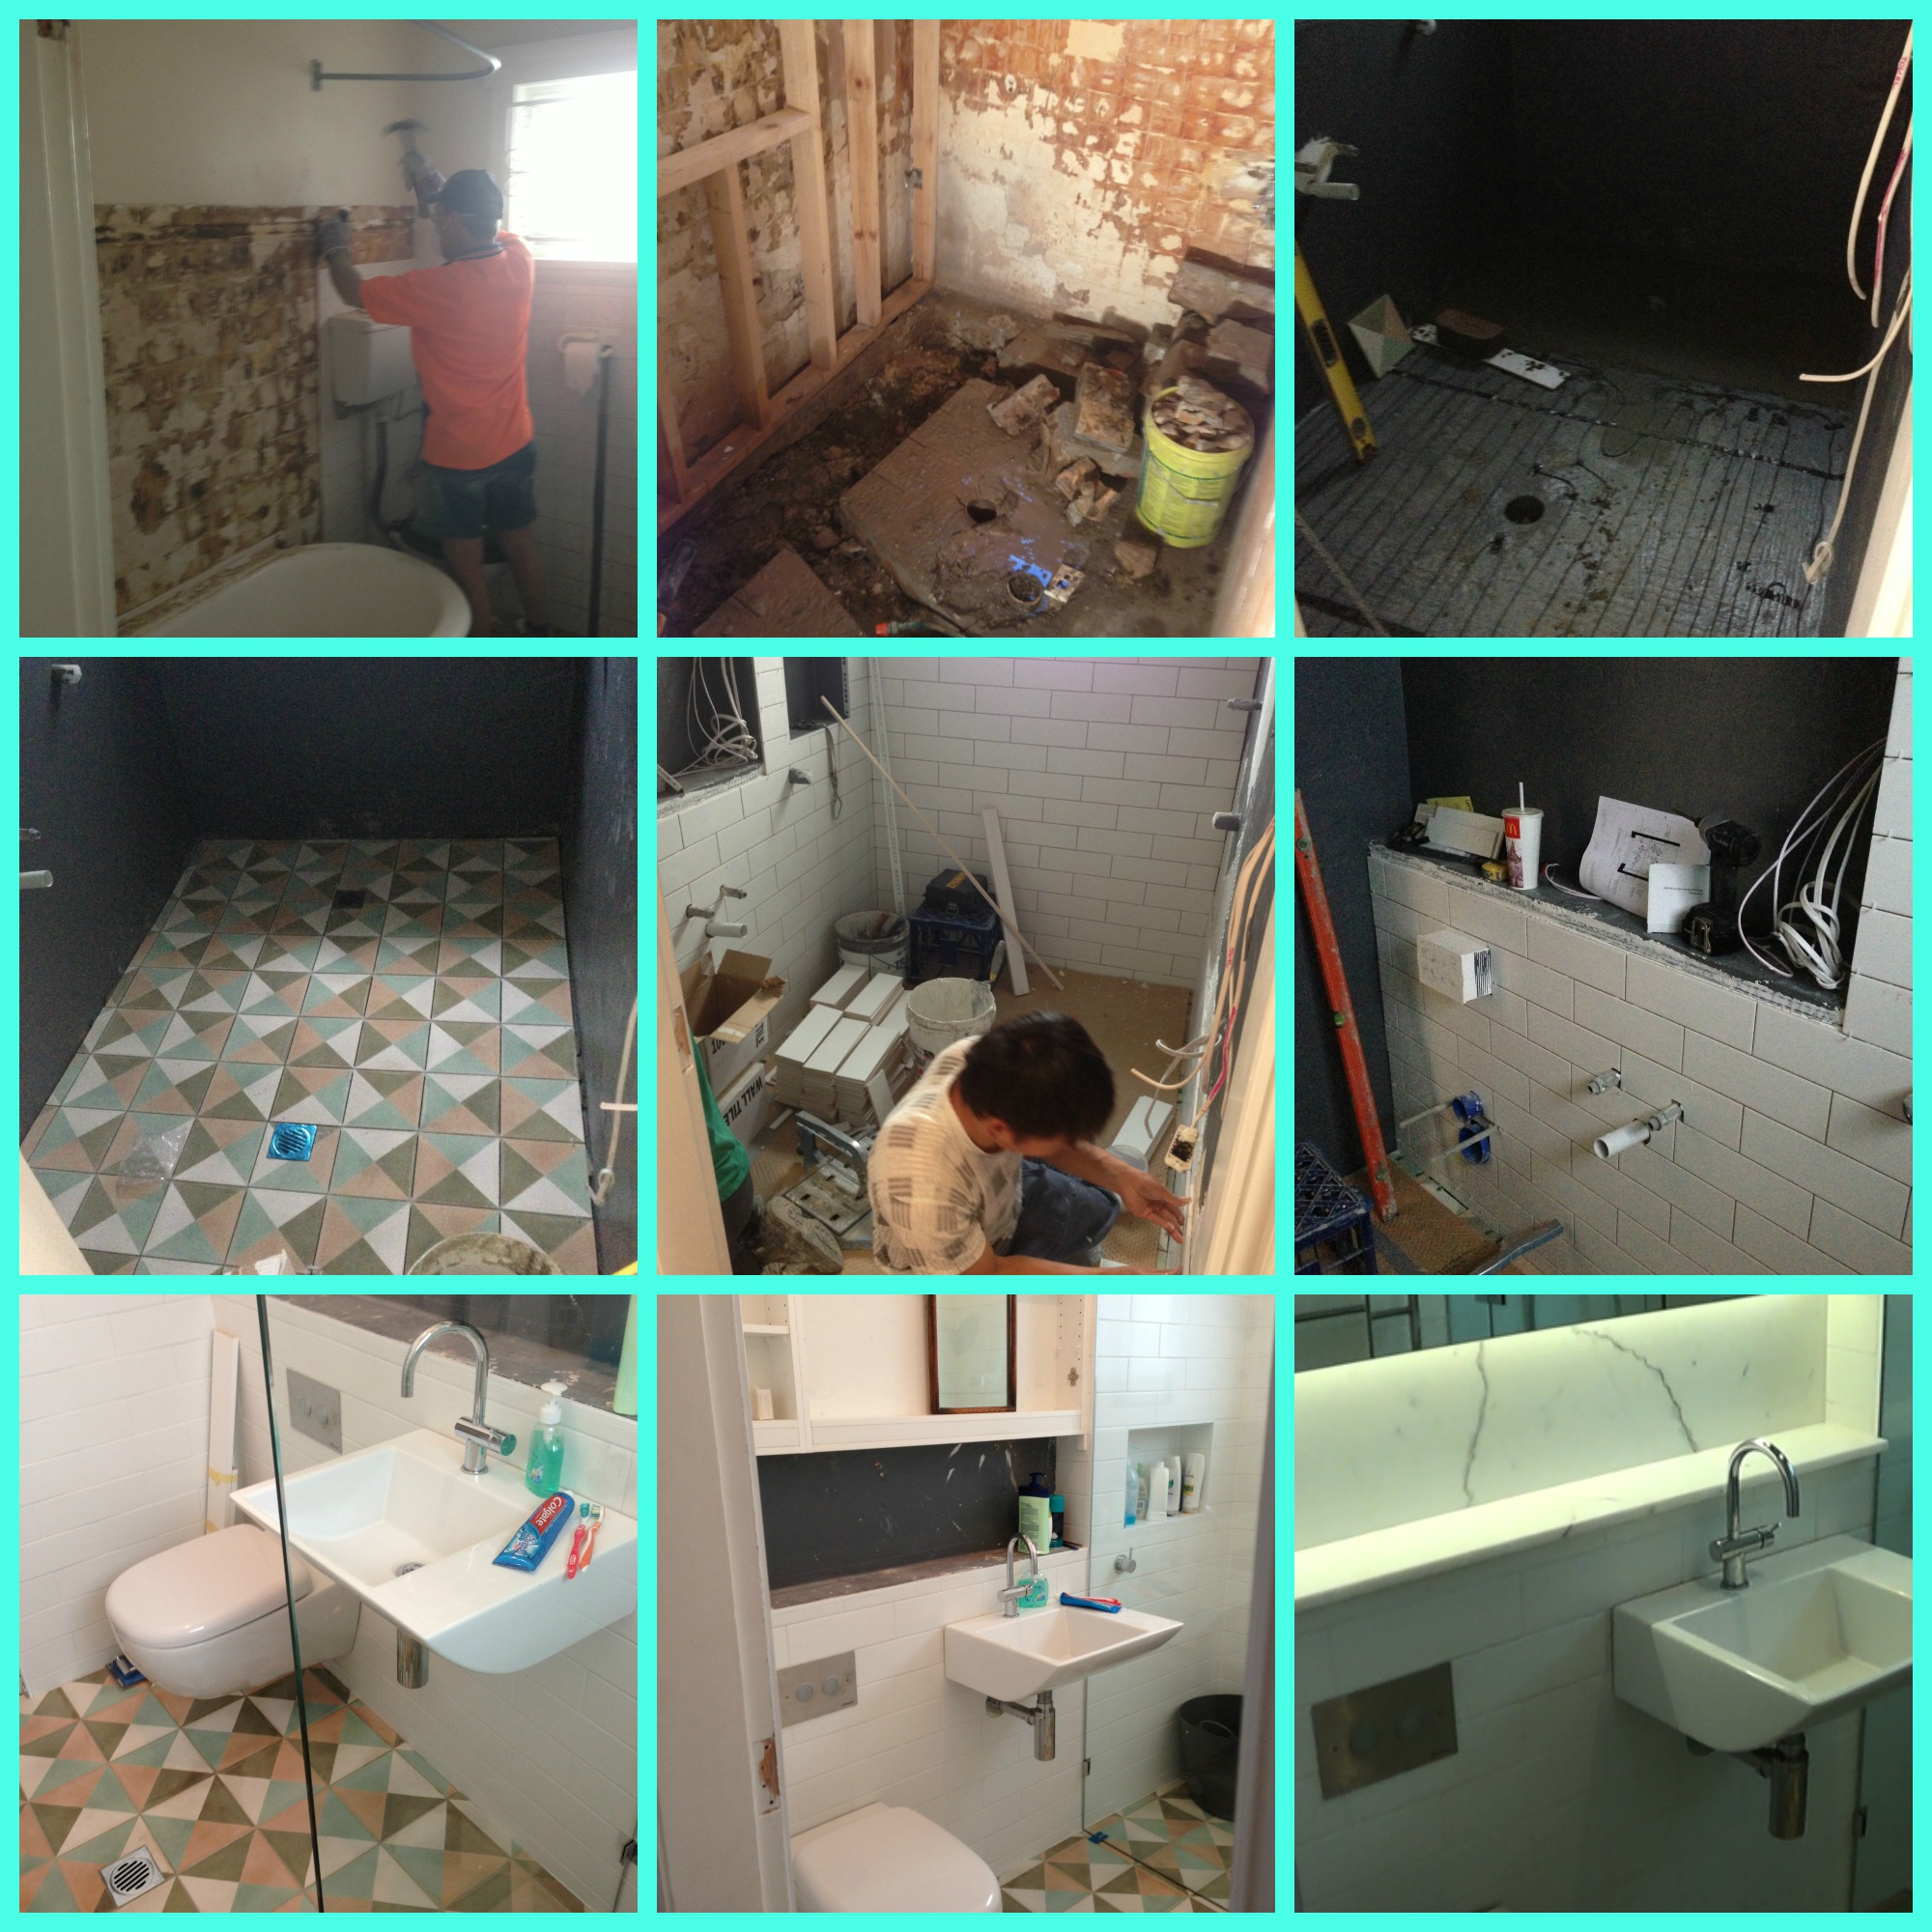 Bathroom progress photos